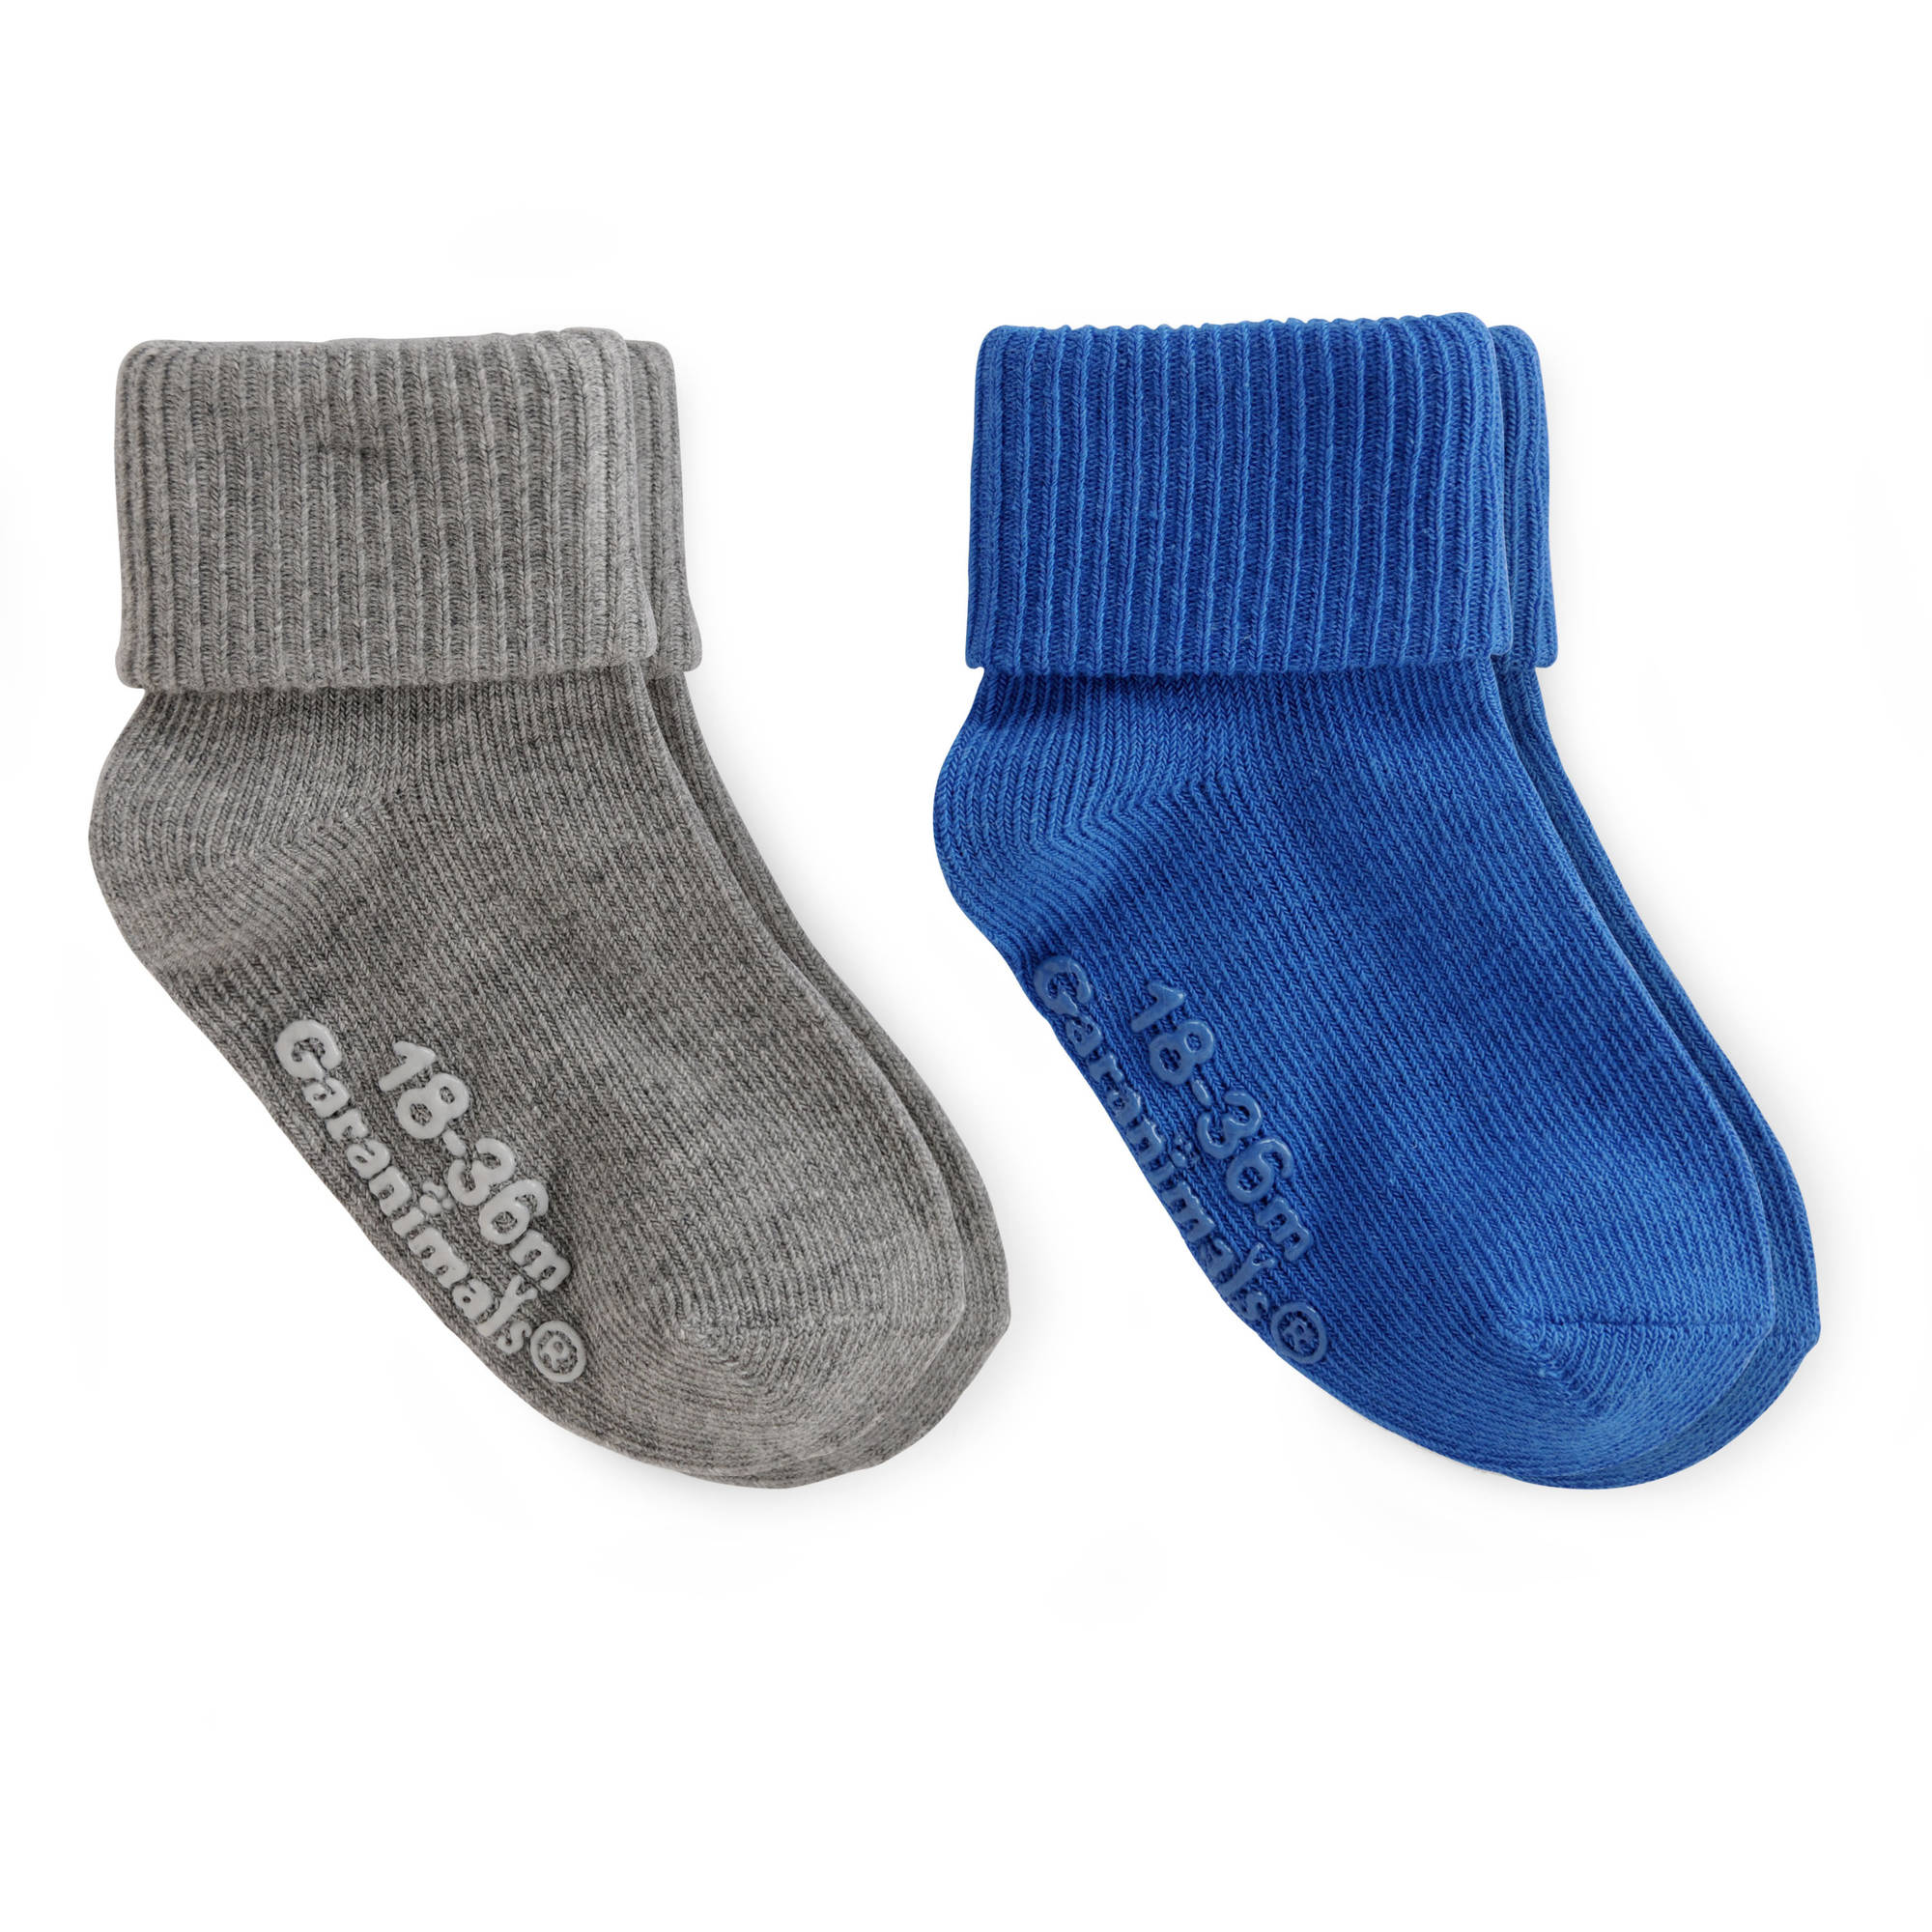 Garanimals Baby Toddler Boys' Grey Blue Gripper Socks Ages NB-5T, 2-Pack